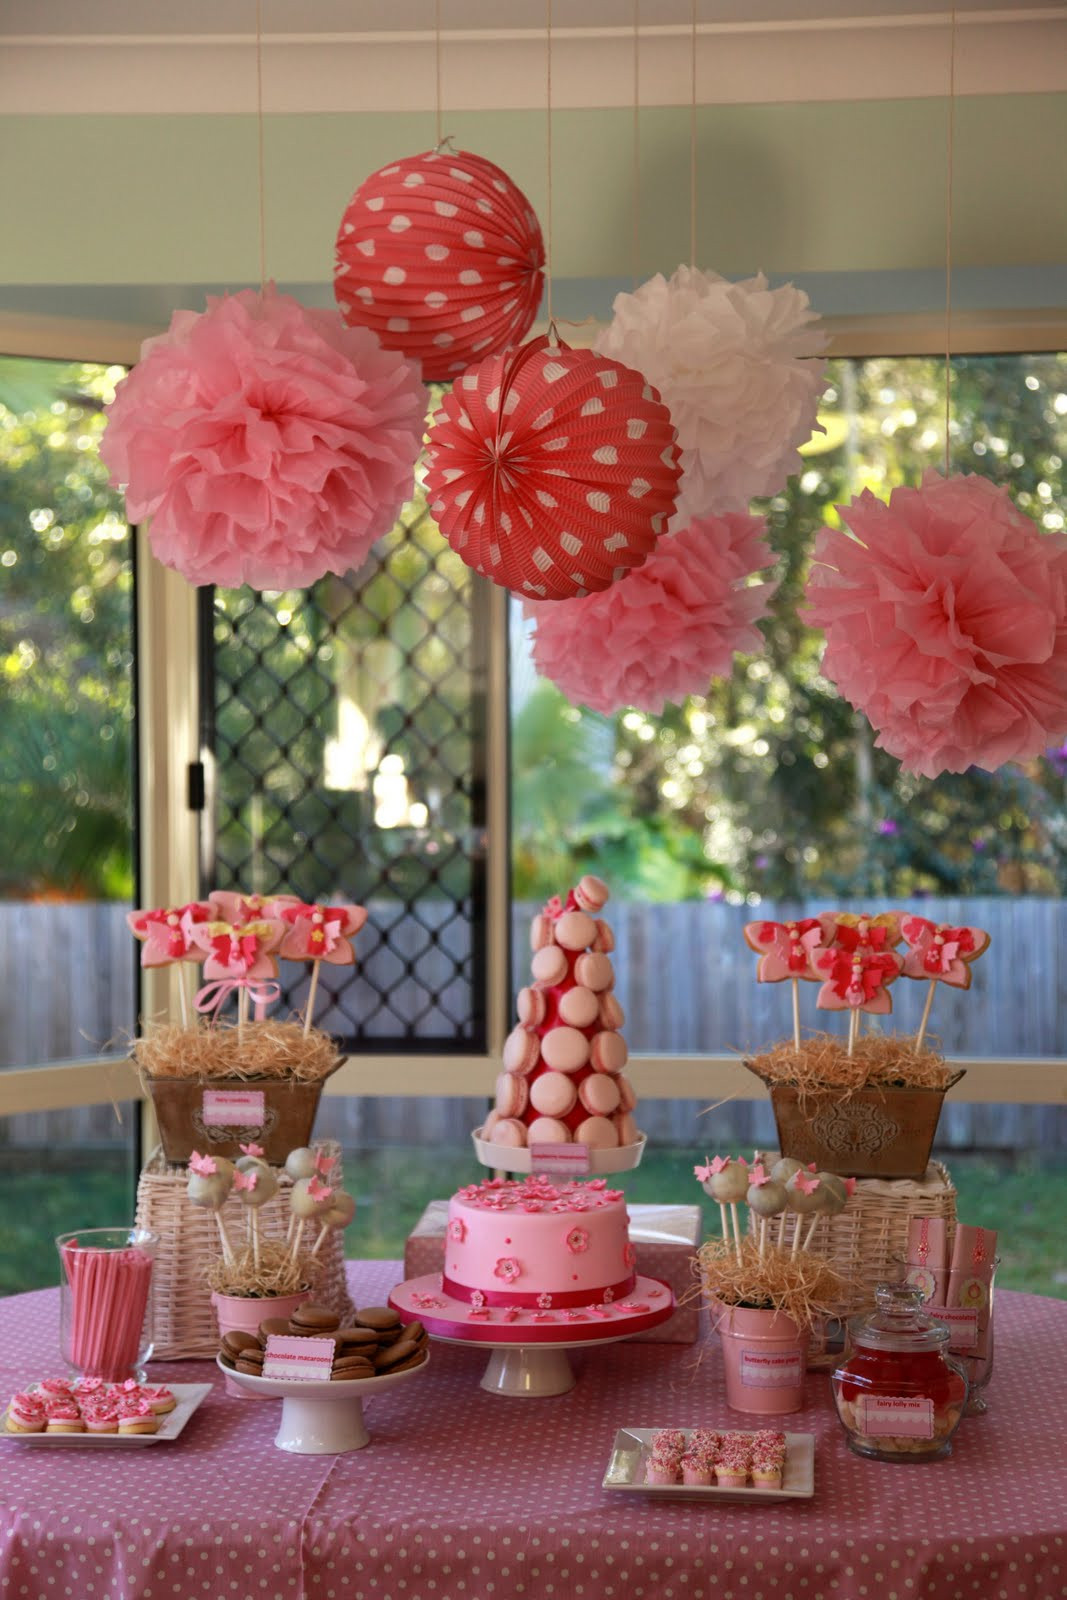 Best ideas about Birthday Decorations . Save or Pin Bubble and Sweet July 2010 Now.